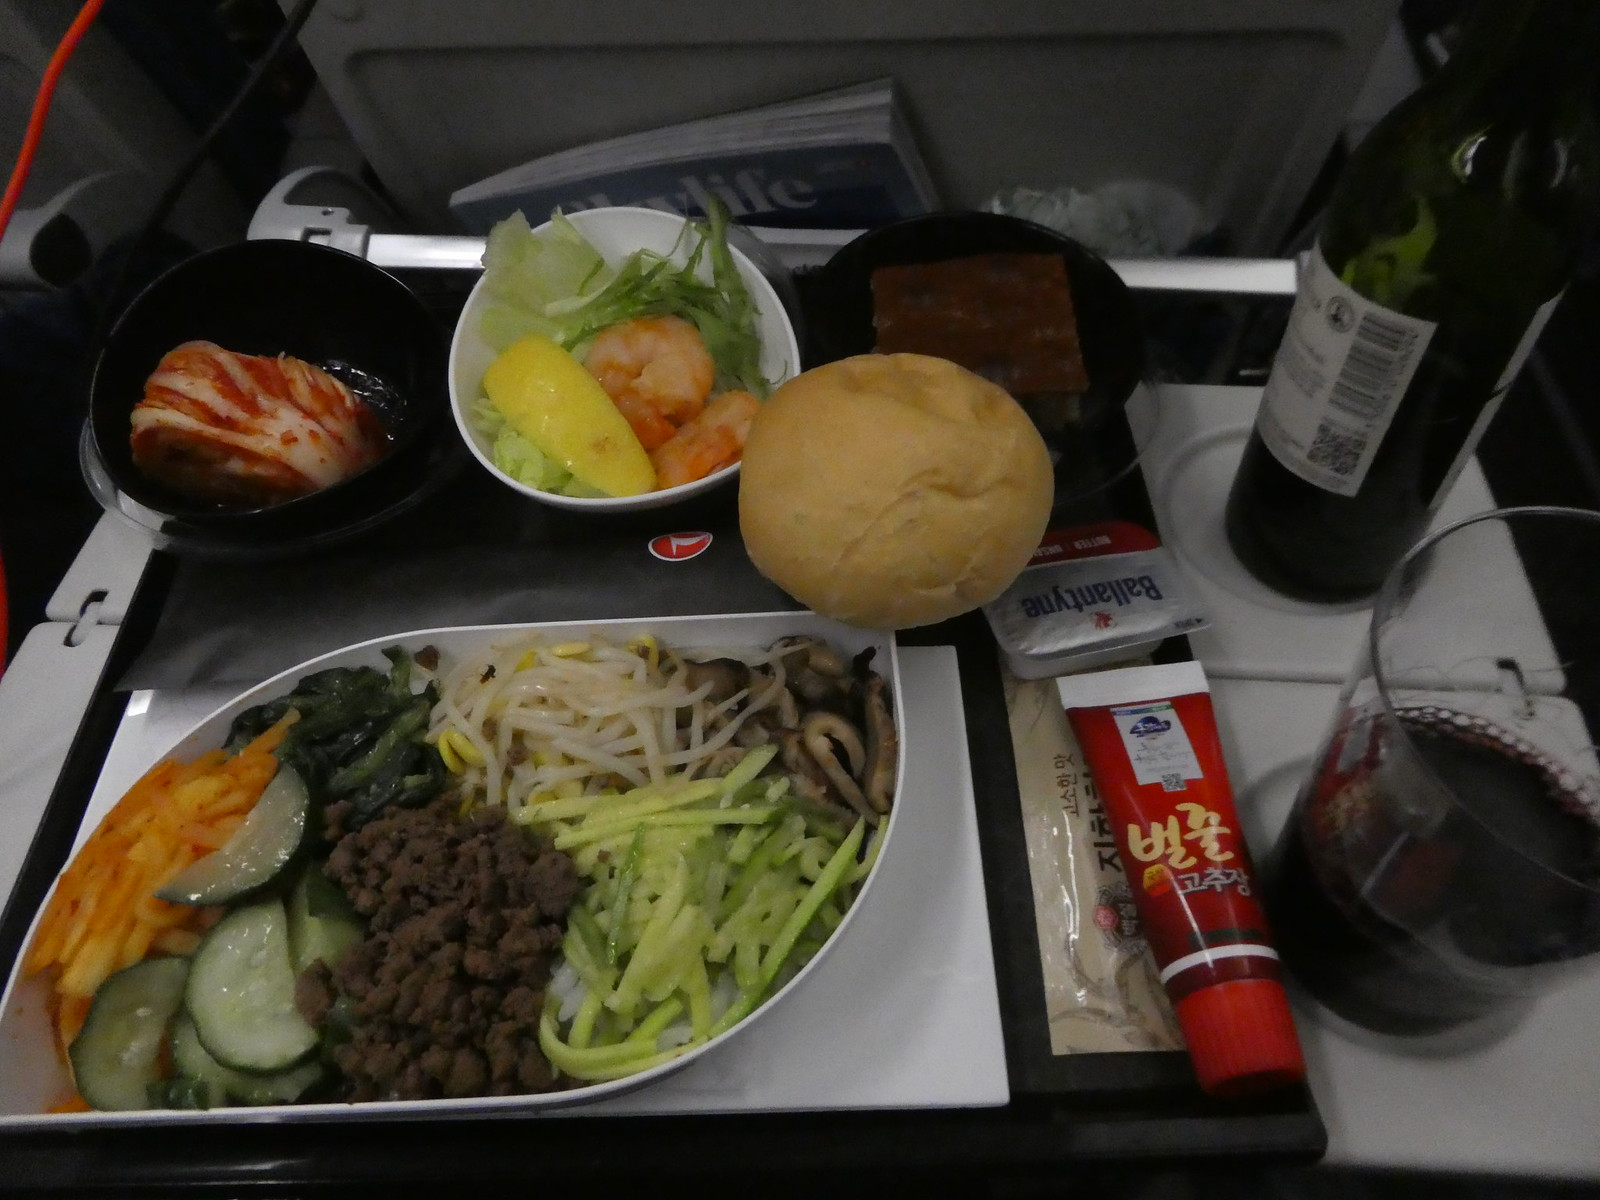 Dinner on board our Turkish Airlines flight from Seoul to Istanbul